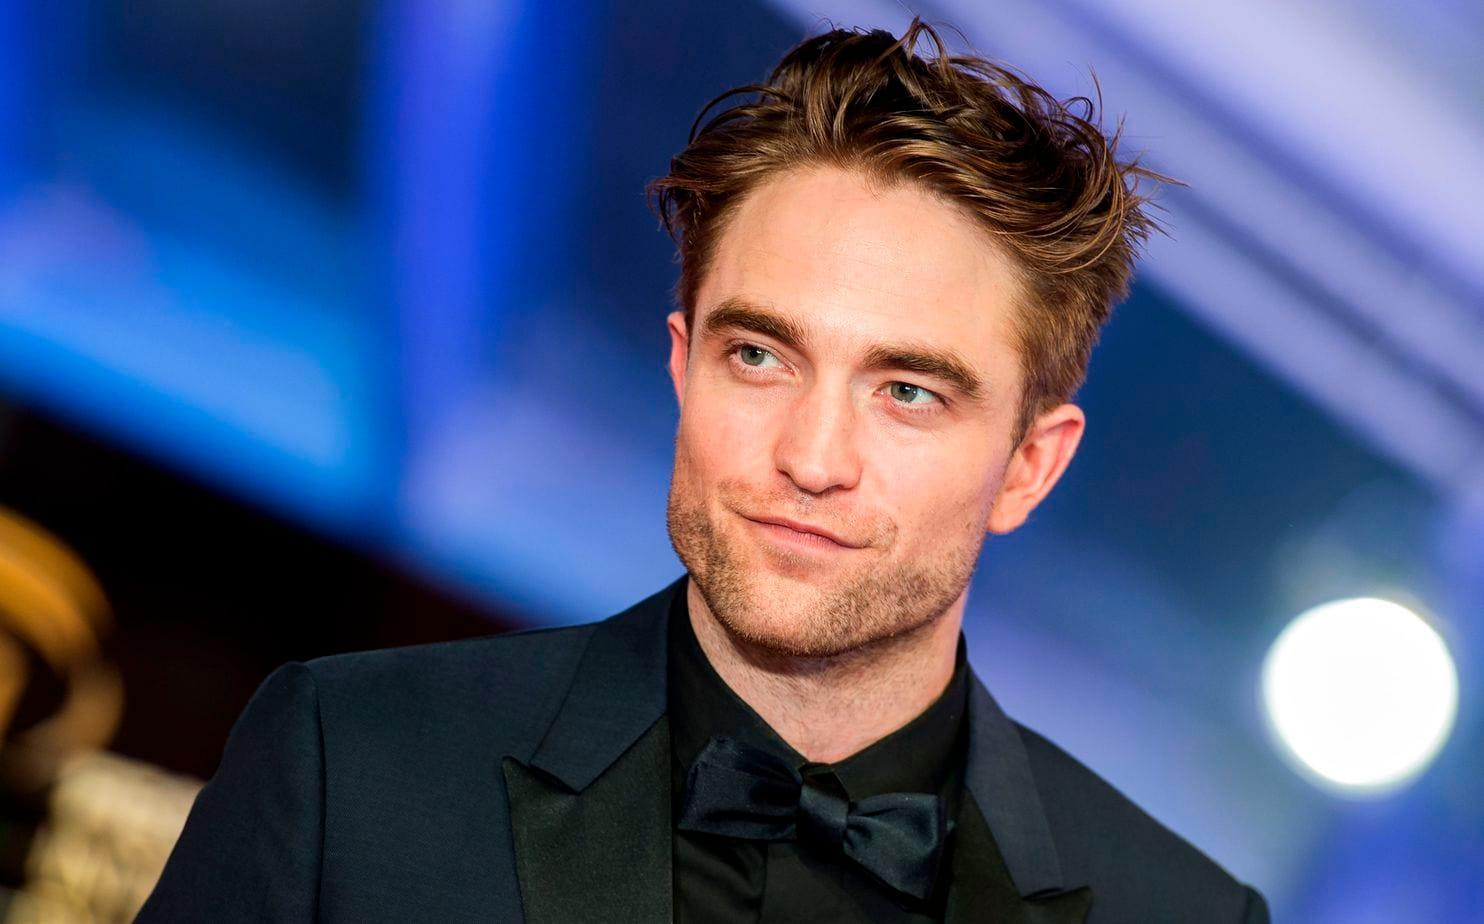 Robert Pattinson Reportedly Struggling To Stay In Top 'Batman' Shape For The Movie While In Quarantine!